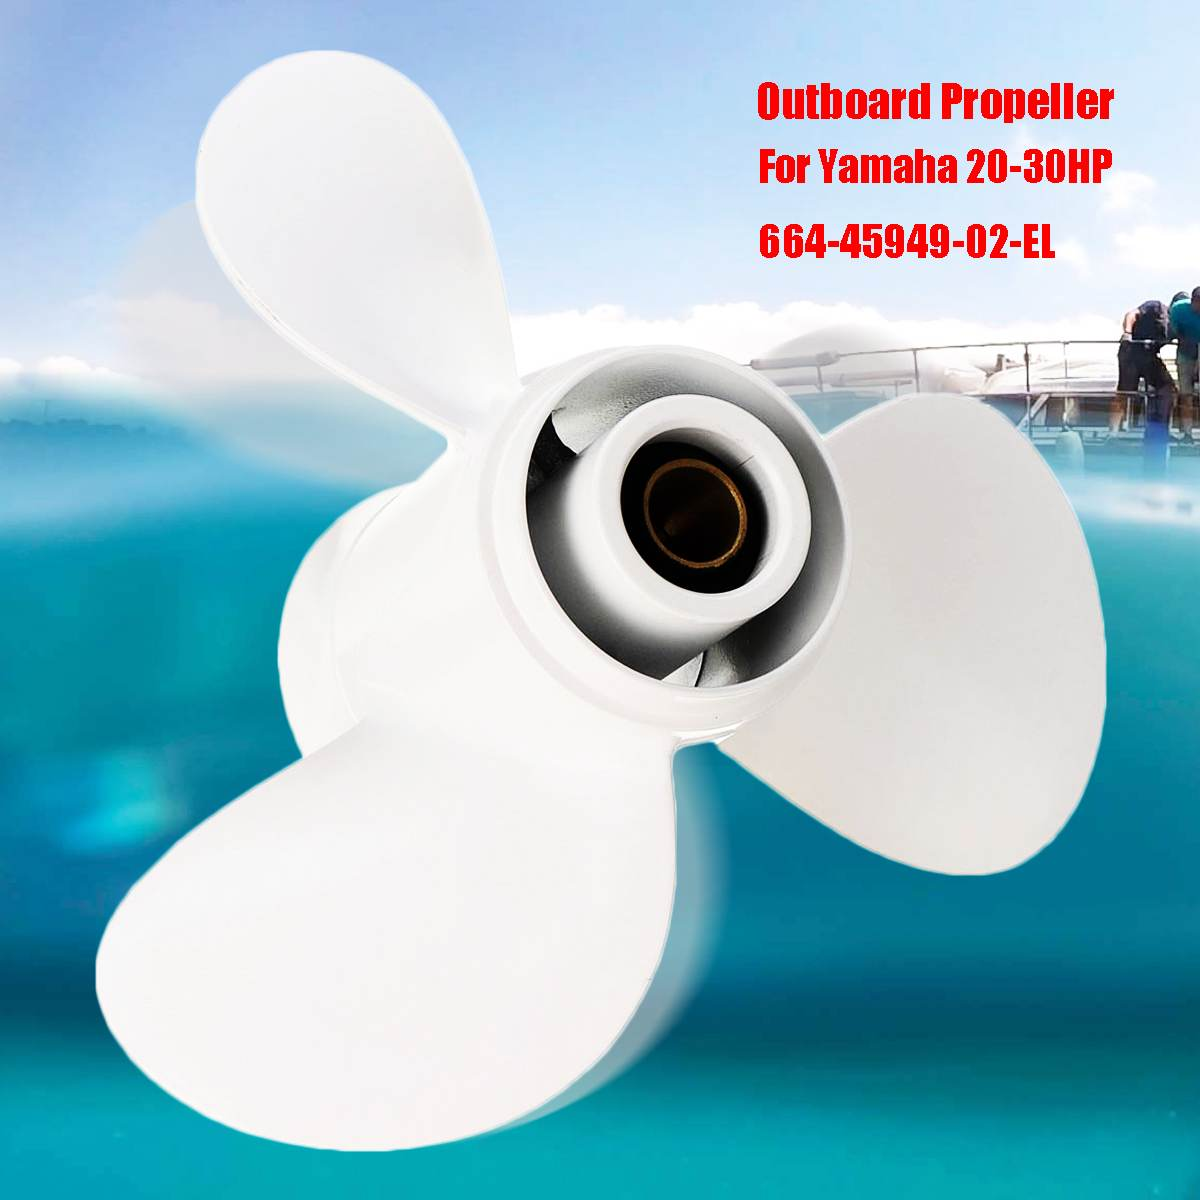 9 7/8 x 13 Marine Boat Outboard Propeller For Yamaha 20 30HP 664 45949 02 EL Aluminum Alloy White 3 Blades 10 Spline Tooth